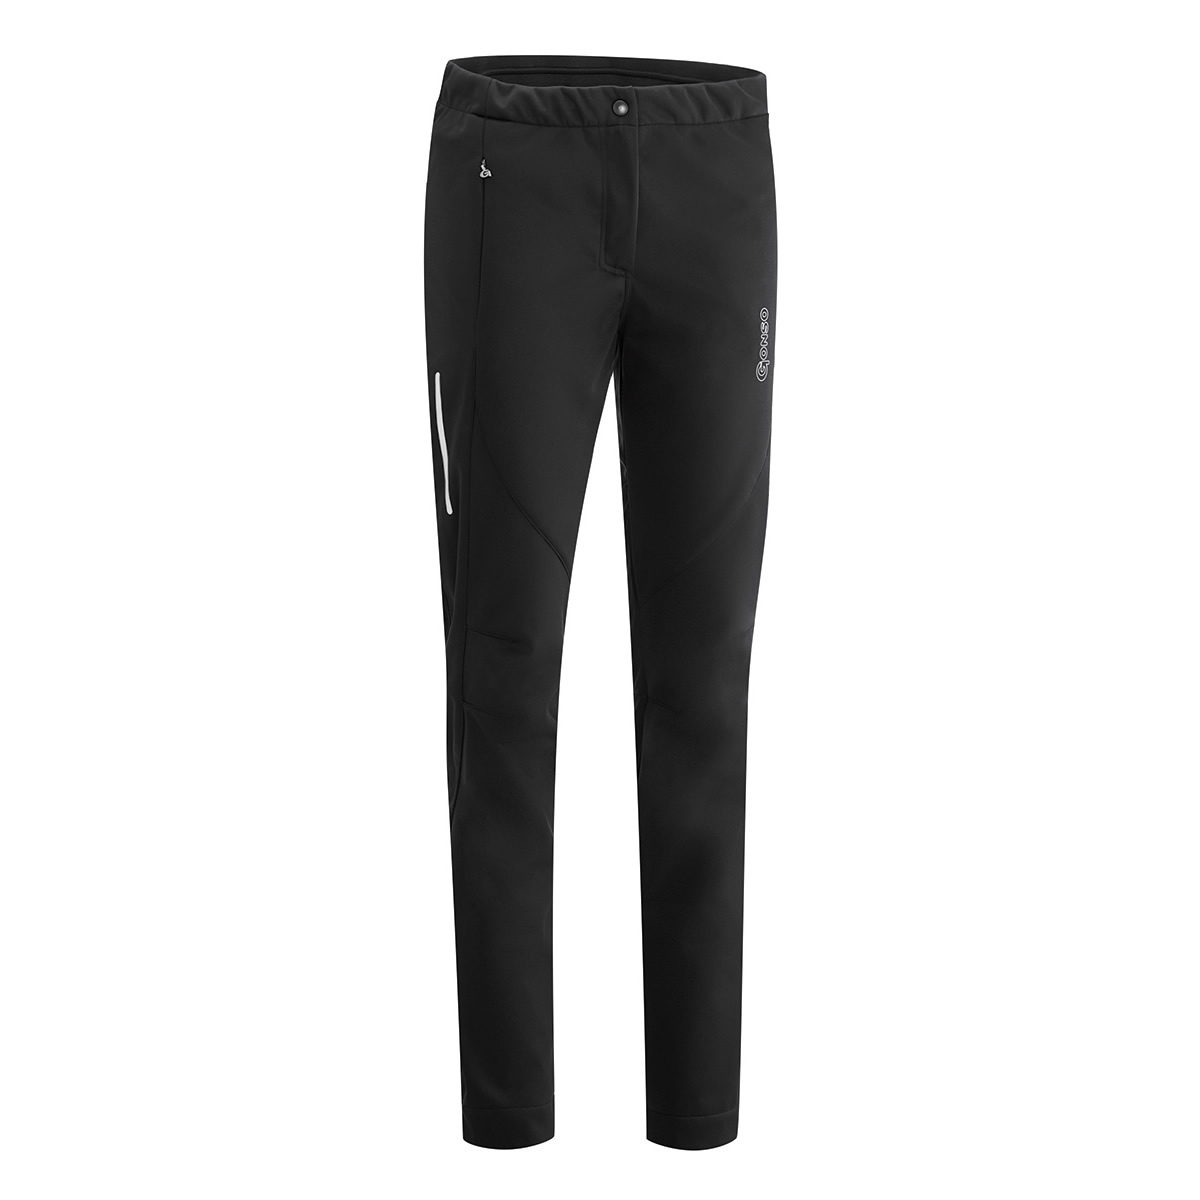 Gonso Riga 2 Softshell Wintersport Hose Damen